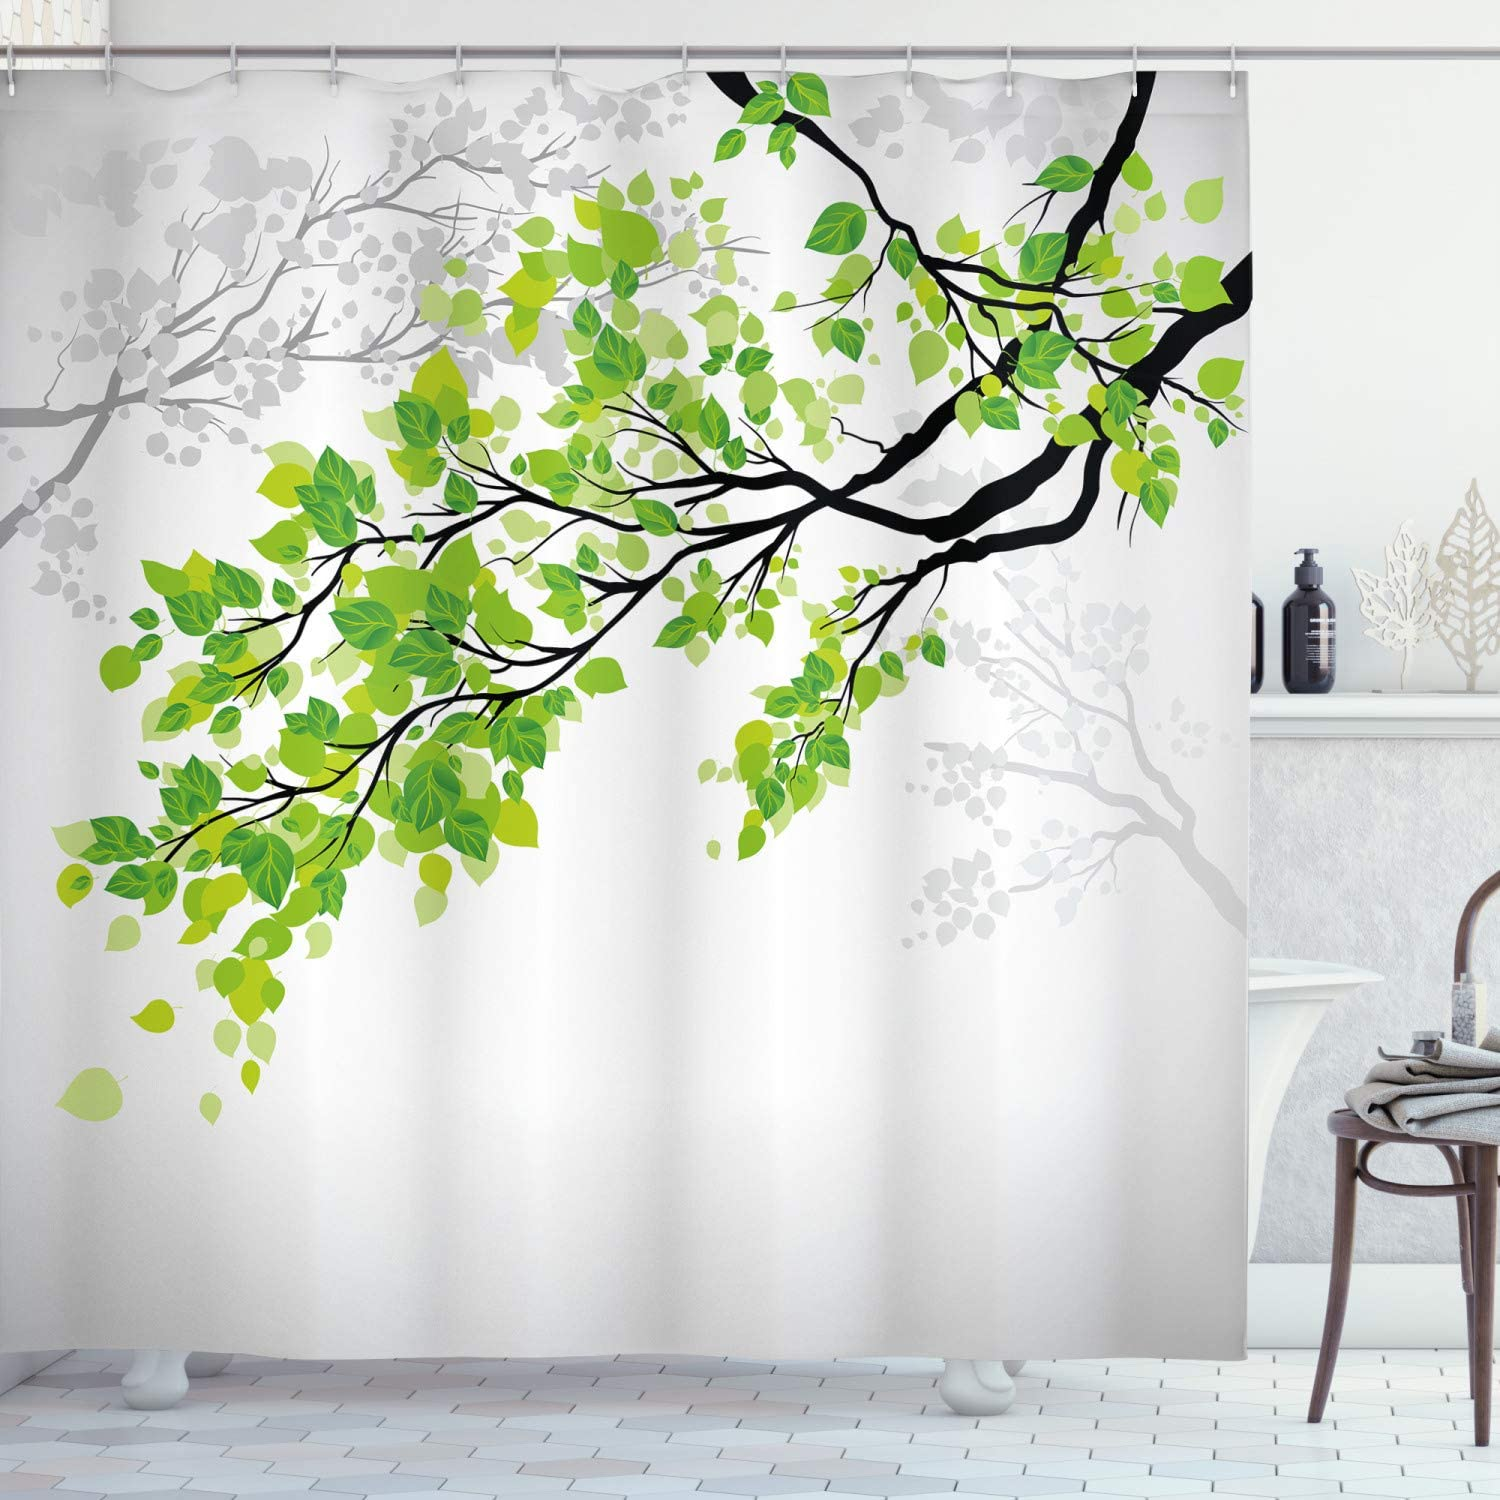 Amazon Com Ambesonne Nature Shower Curtain Twiggy Spring Tree Branch With Refreshing Leaves Summer Peaceful Woodland Graphic Cloth Fabric Bathroom Decor Set With Hooks 75 Long Green Grey Home Kitchen